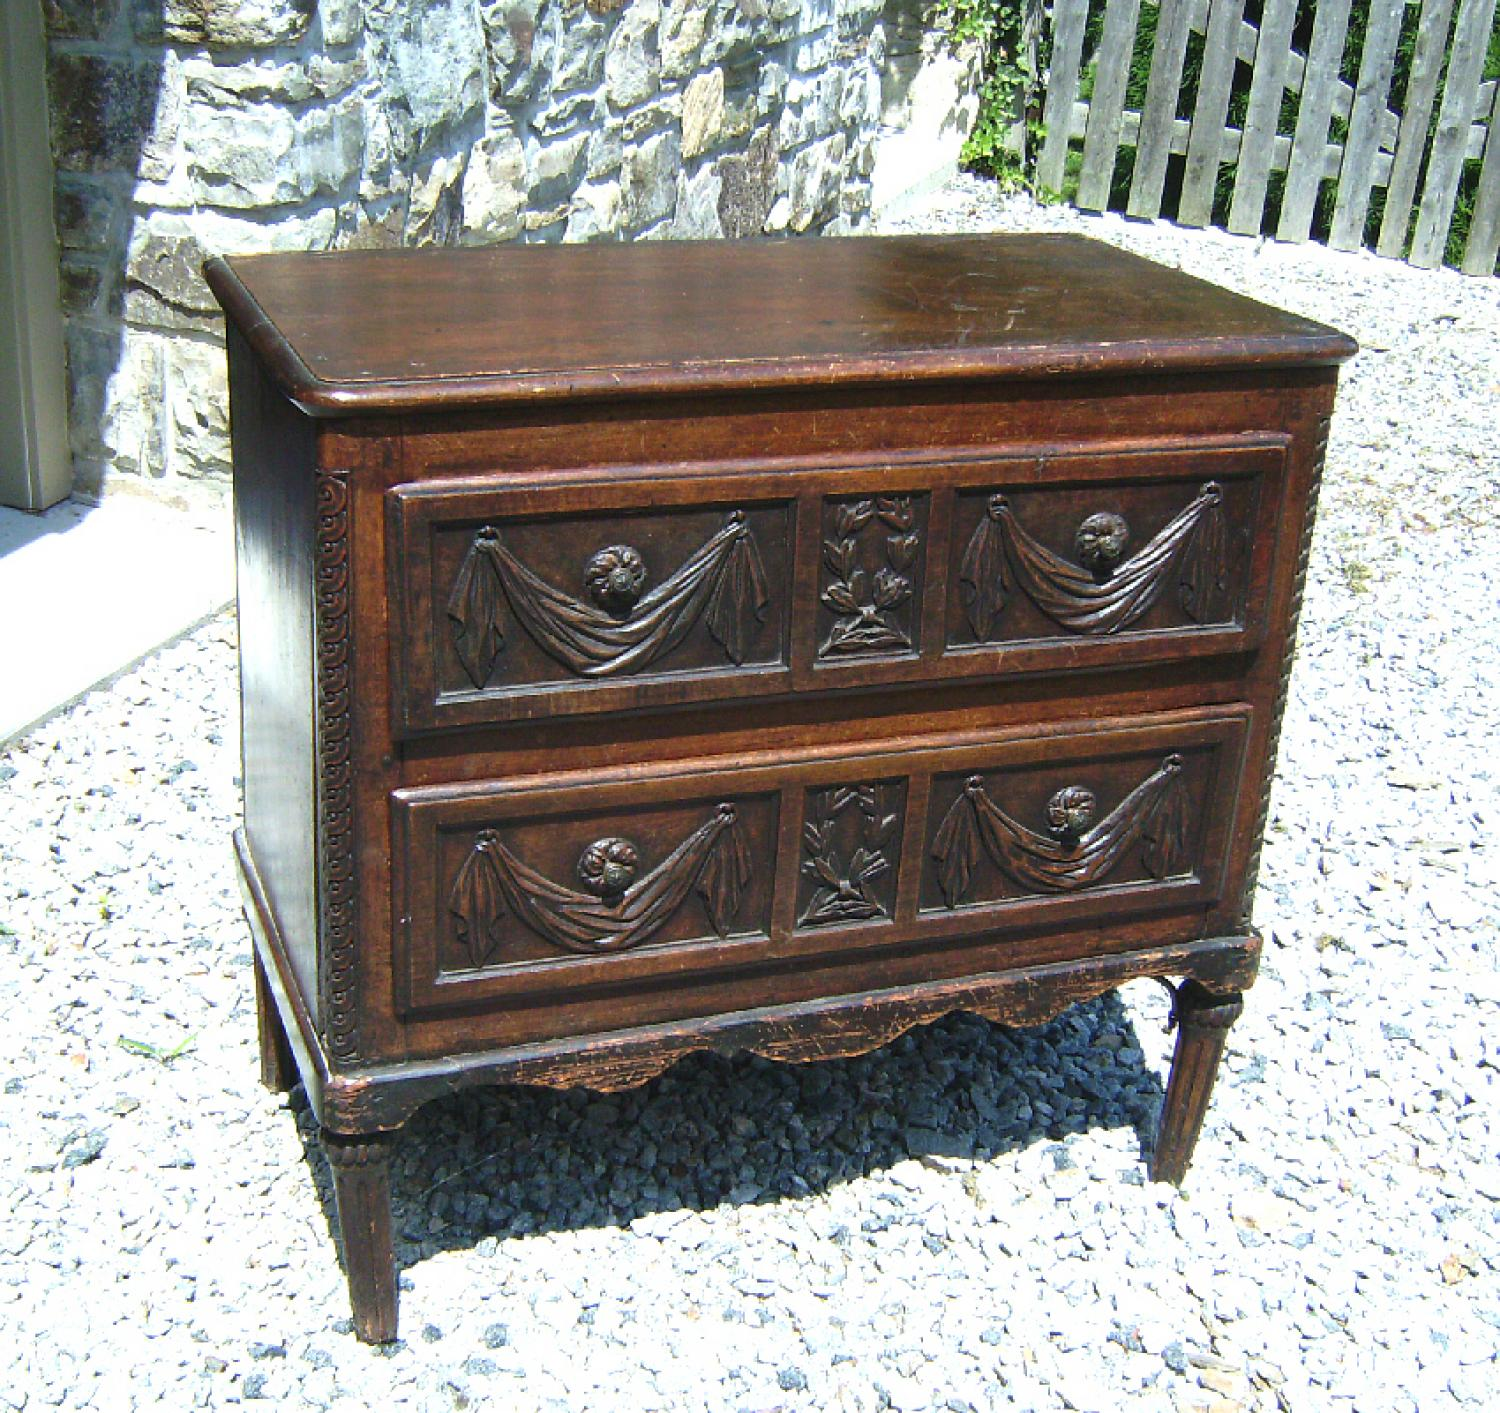 17th century French chest with carved drawer fronts c1680